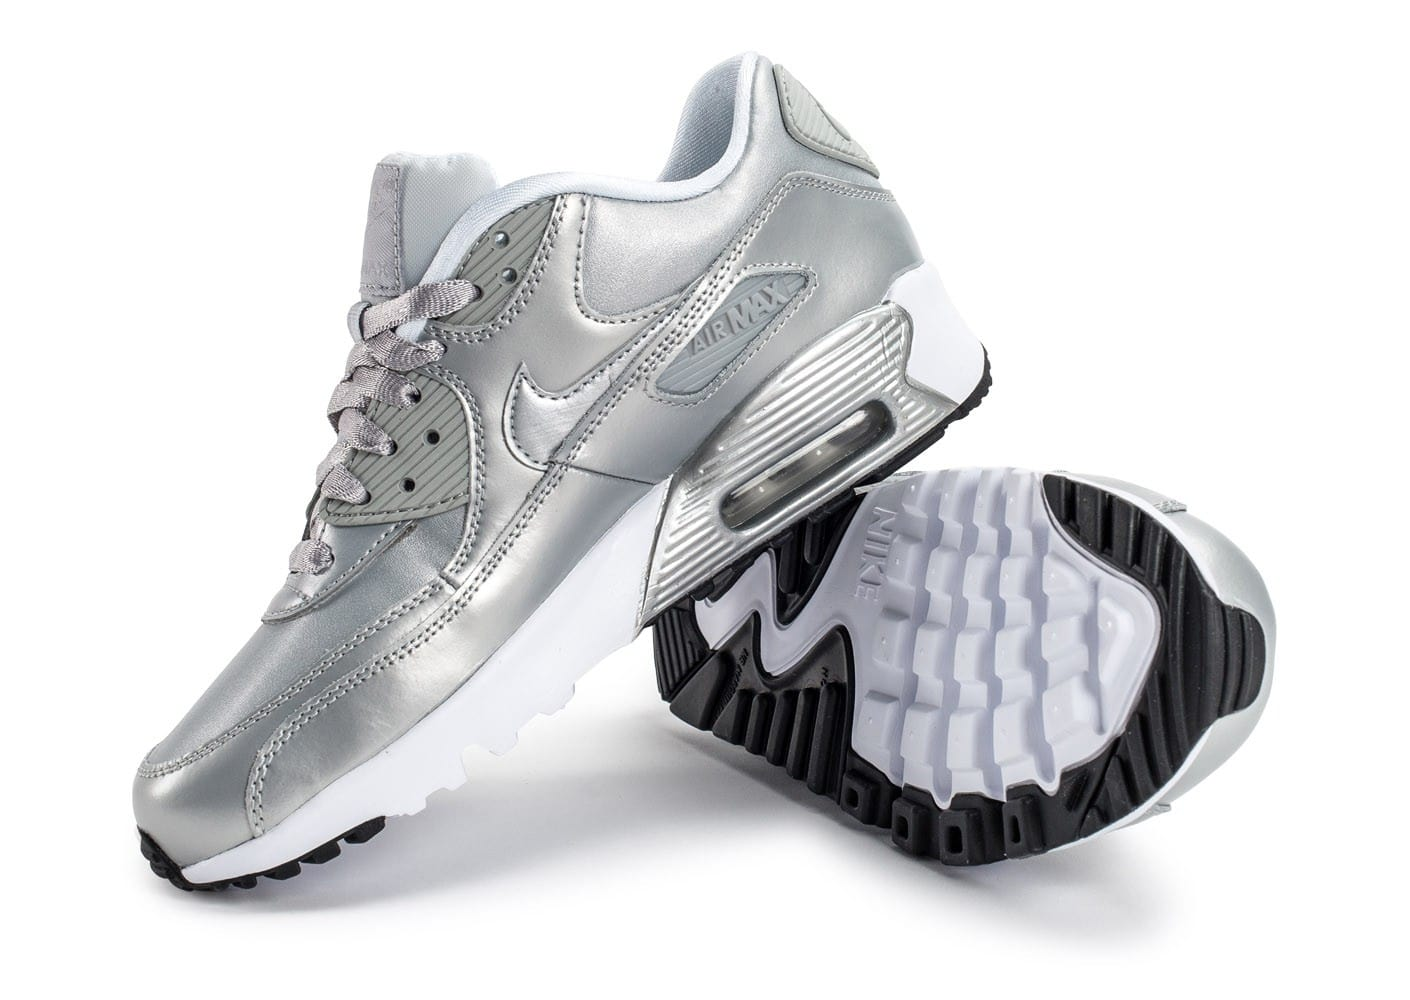 on sale 899b8 1d688 ... Chaussures Nike Air Max 90 SE Leather silver pack vue avant ...